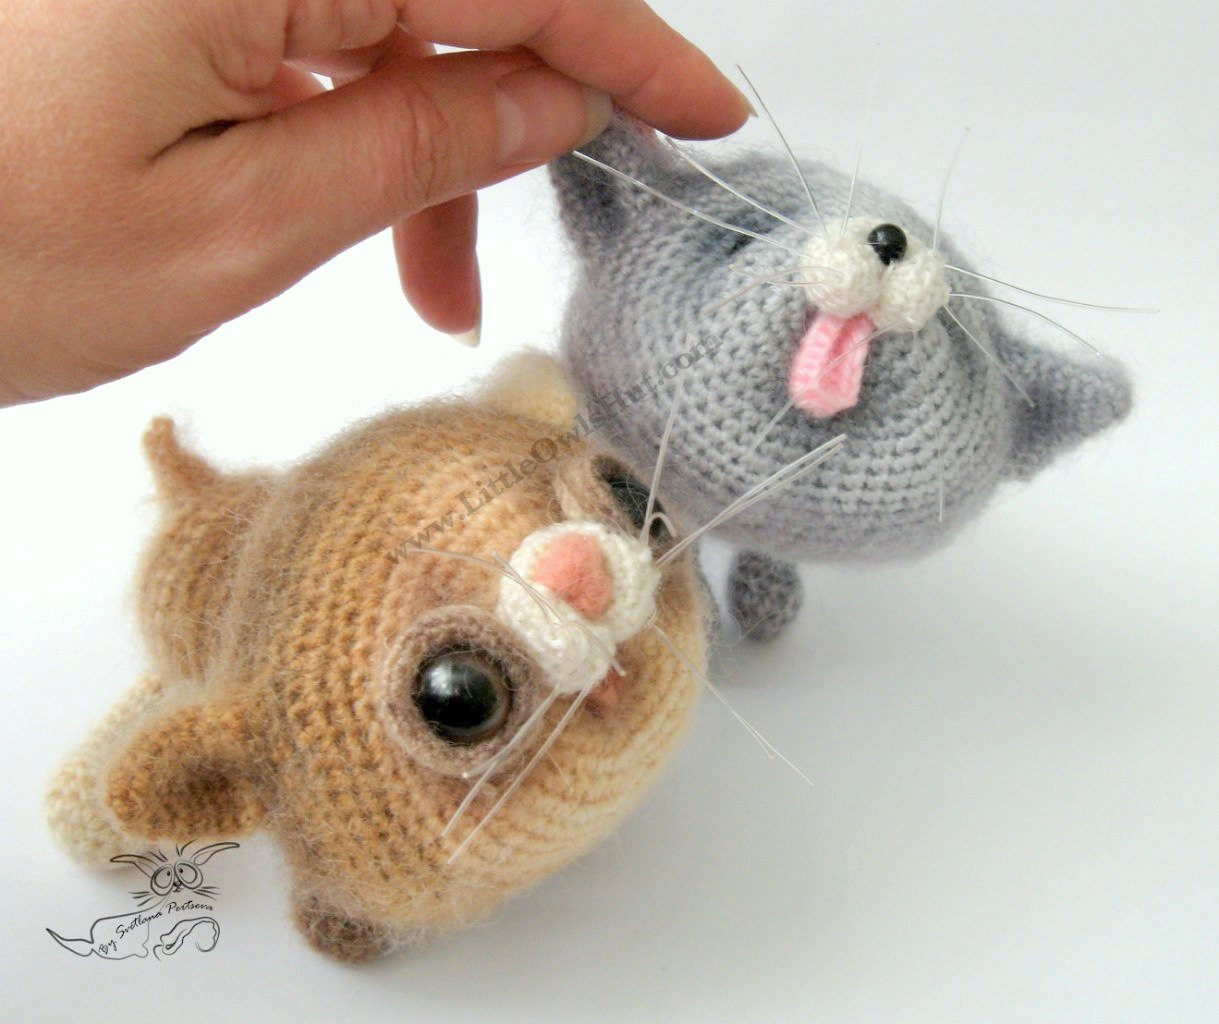 Elegant 020 2 Kittens toy with Wire Frame Amigurumi Crochet Pattern Amigurumi Cat Pattern Of Awesome 50 Pics Amigurumi Cat Pattern